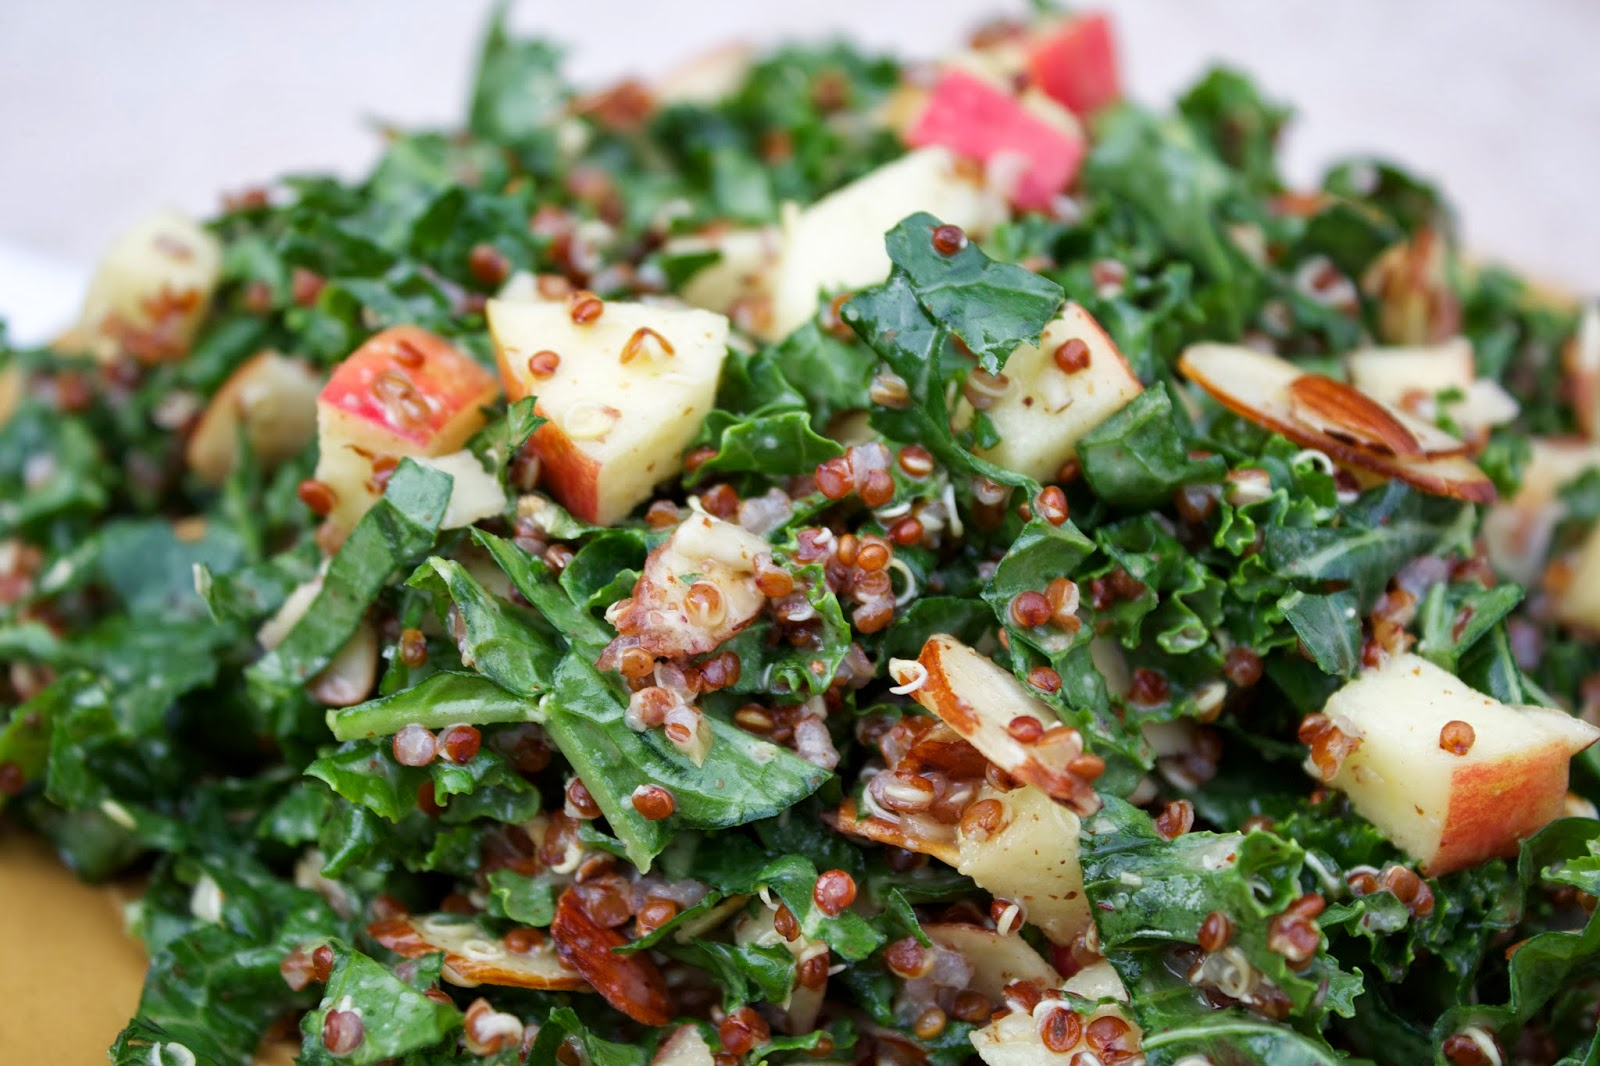 ... quinoa and cabbage salad recipe by terry walters quinoa and cabbage